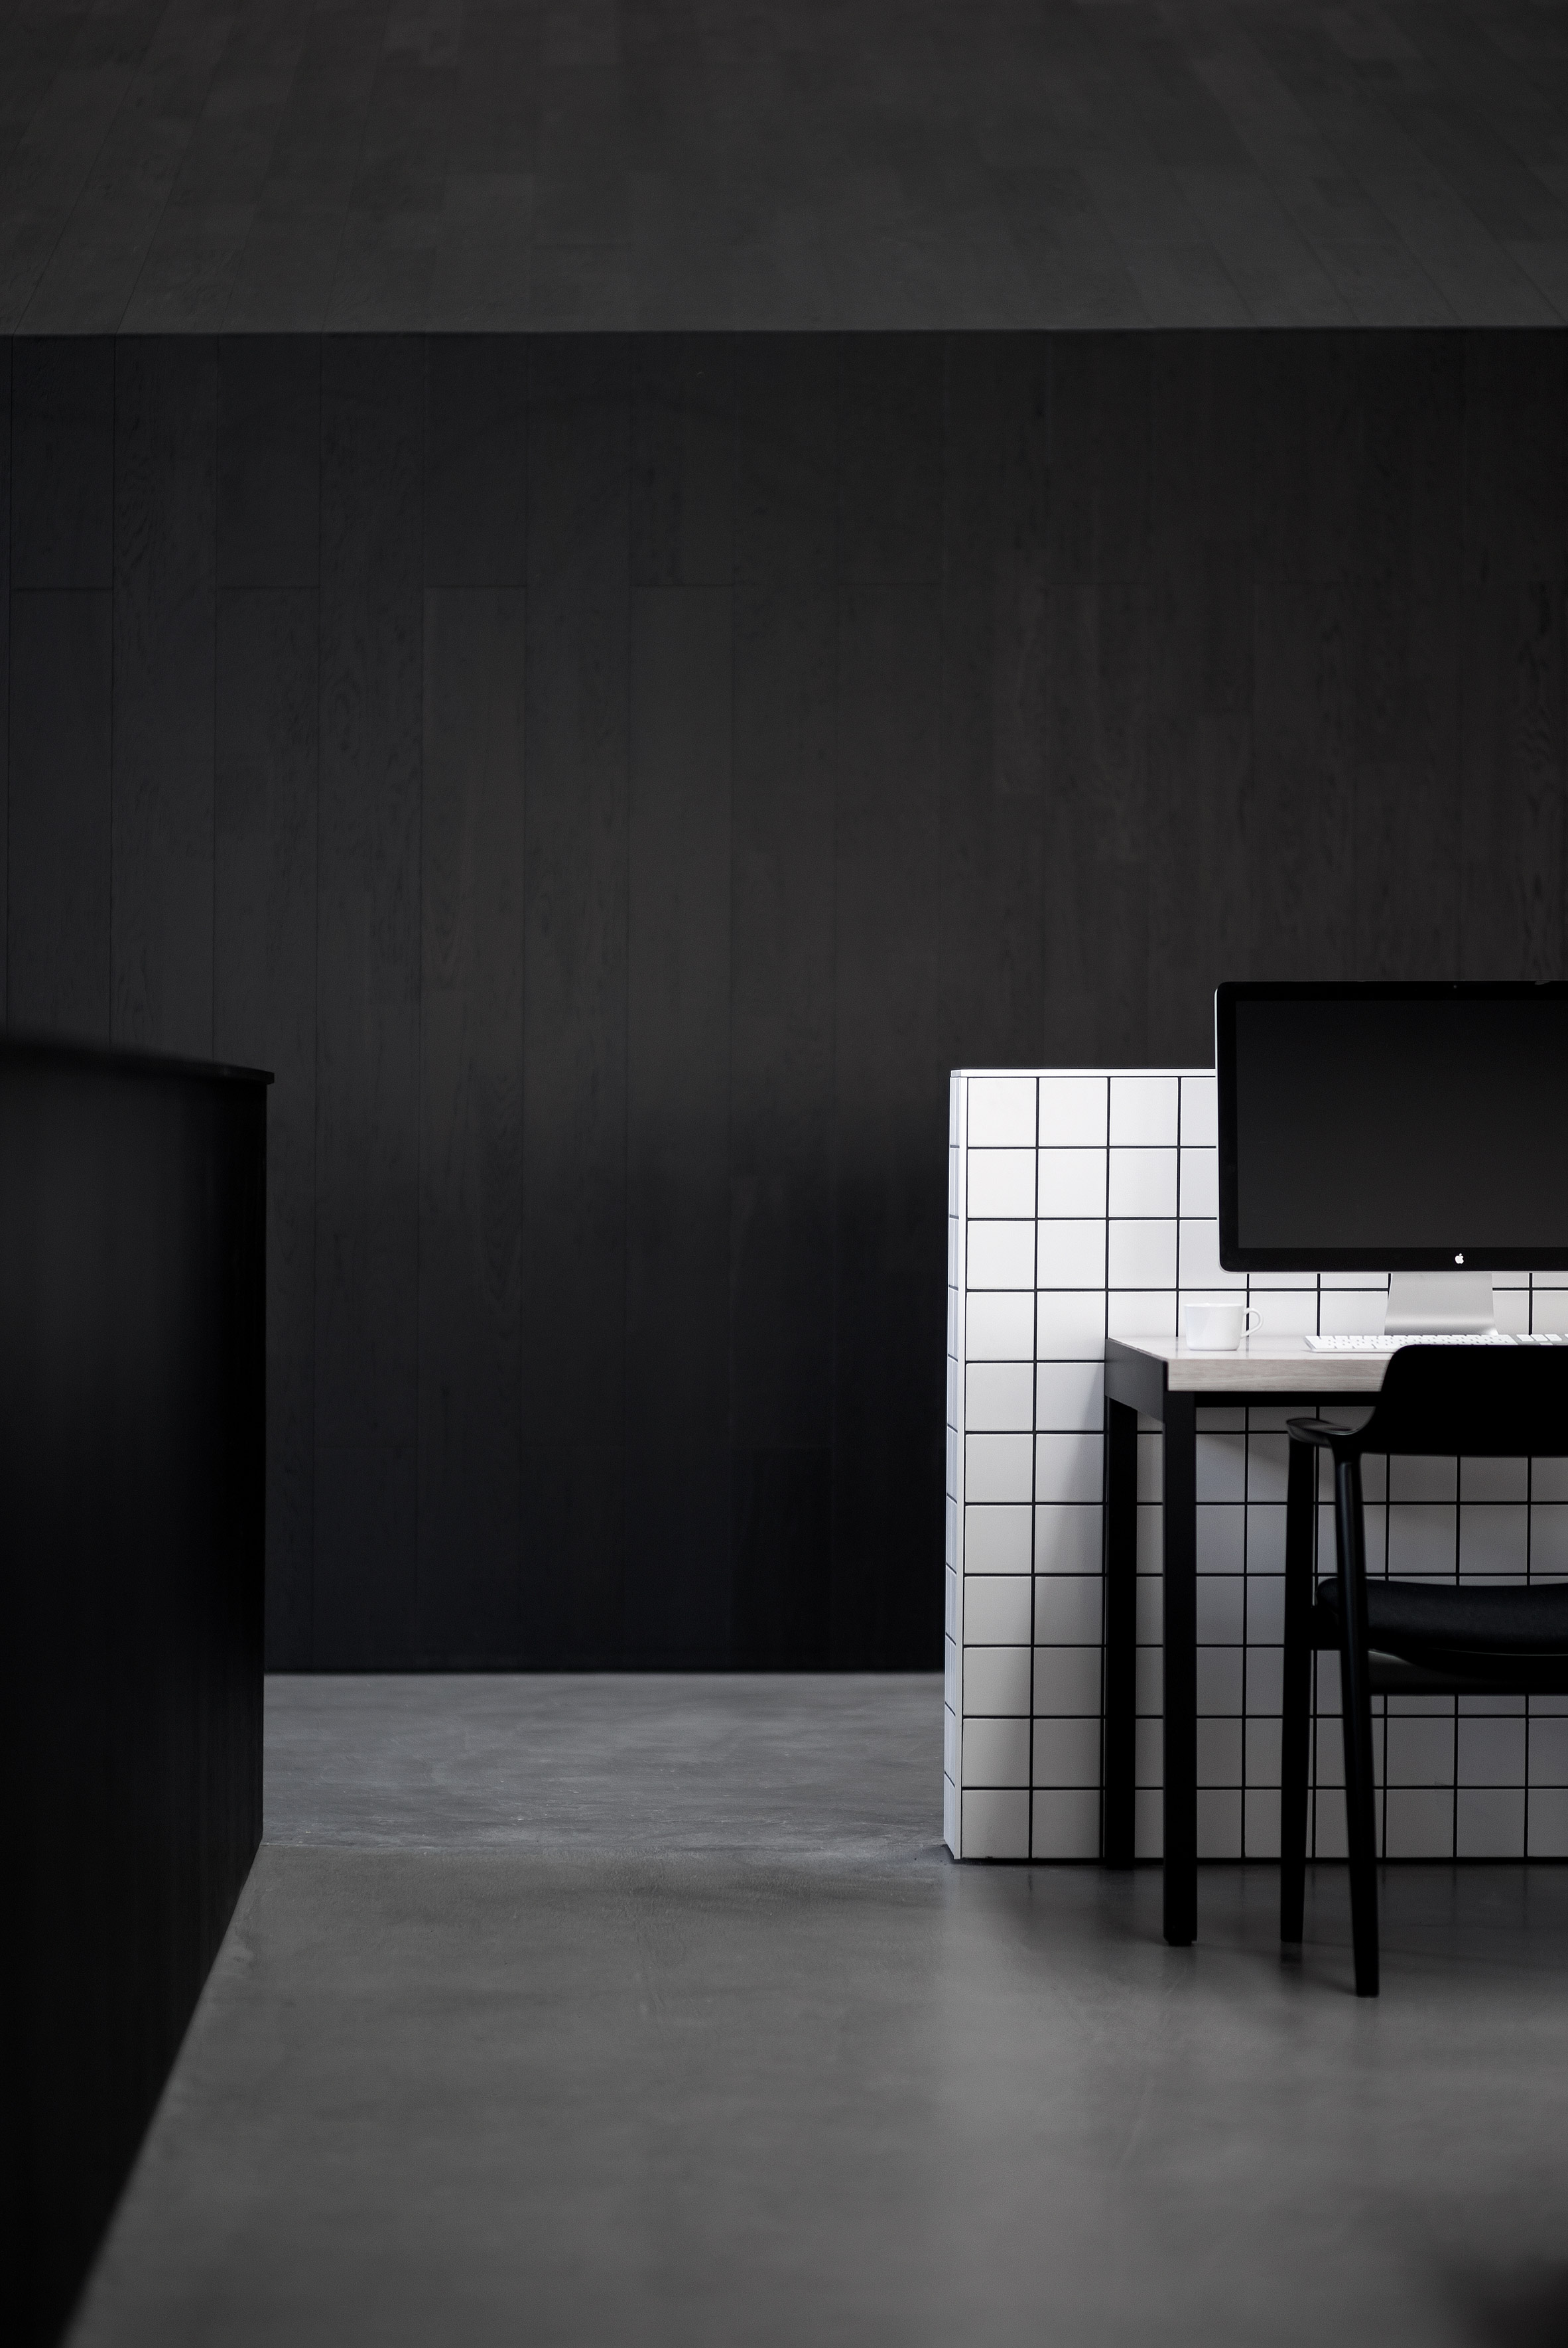 Amos and Amos takes cues from Scandinavian design for AKQA's new Gothenburg studio